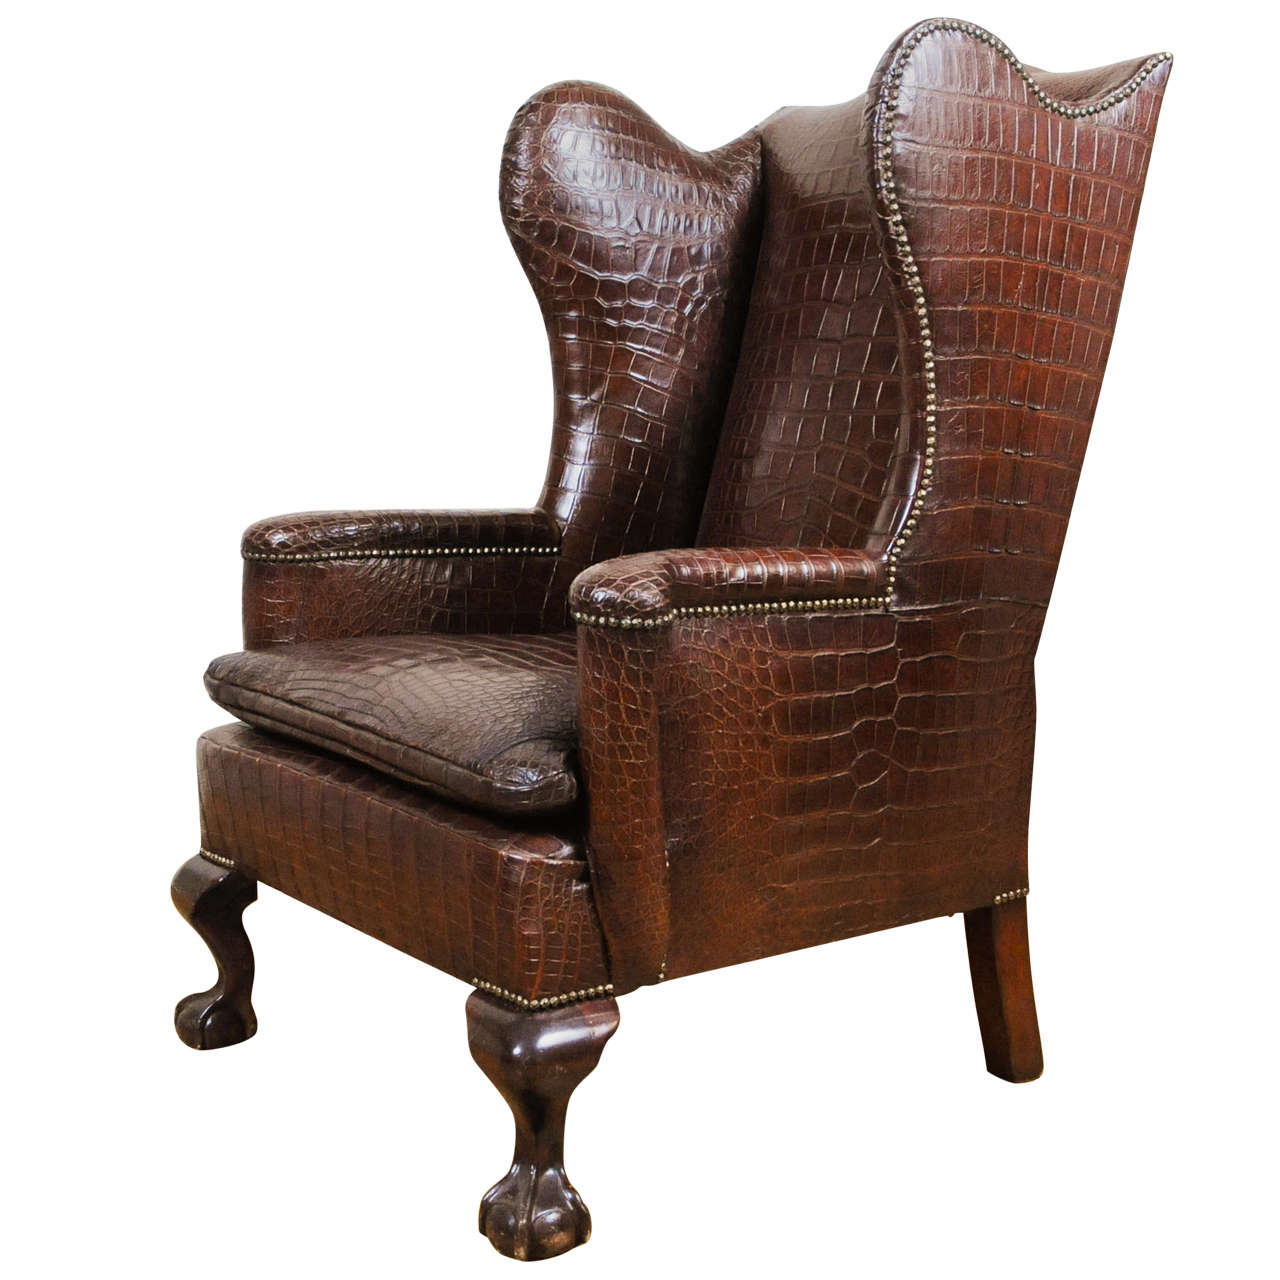 Unusual Chairs A Very Unusual And Chic Crocodile Upholstered Wing Chair